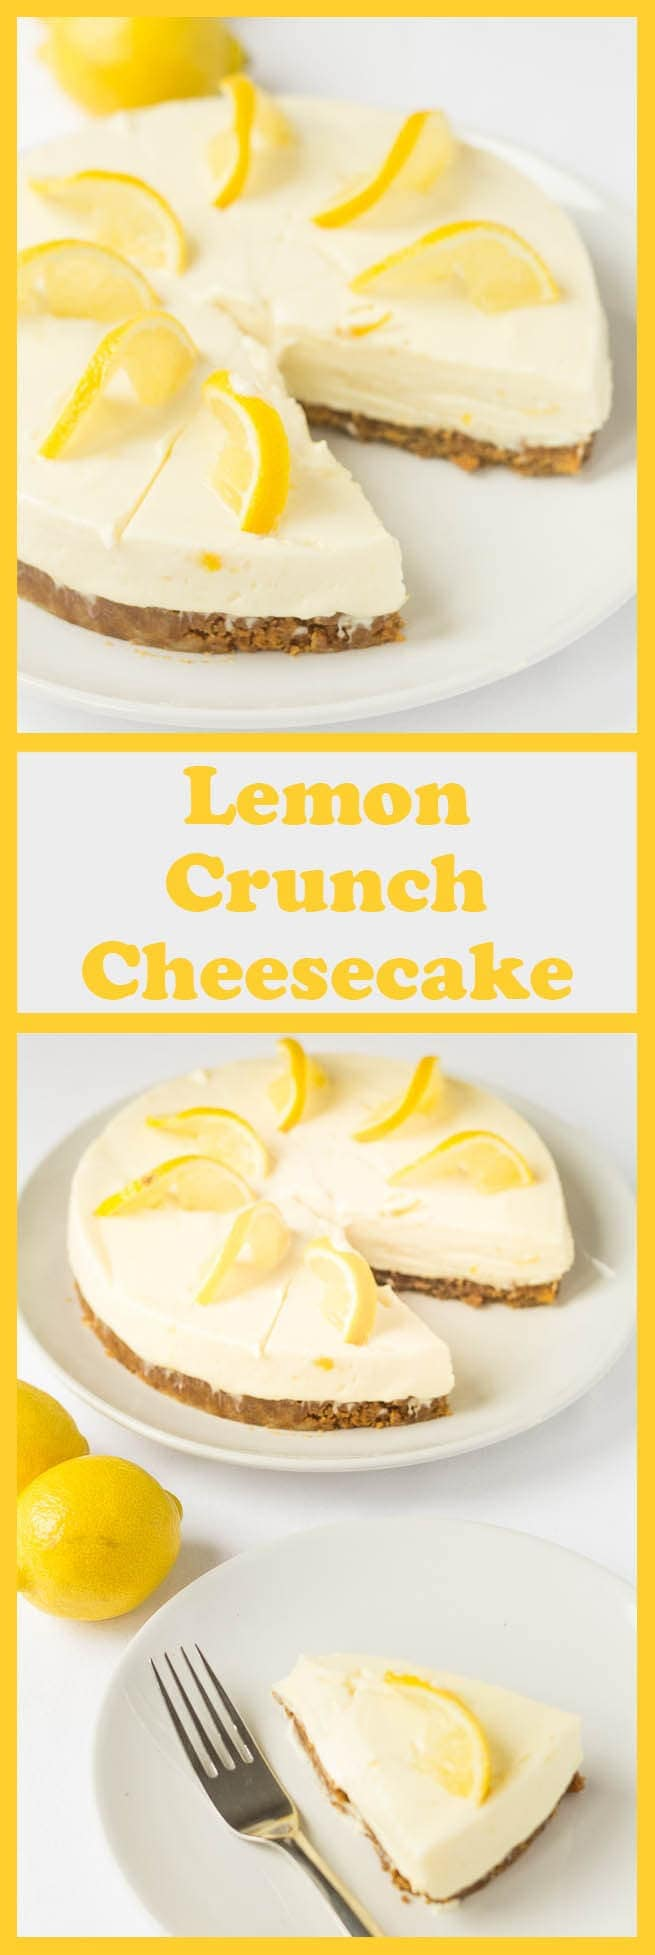 Lemon crunch cheesecake is a delicious no bake cheesecake recipe. It's simple, low cost and easy to make. With an amazing zingy refreshing lemon flavour all it requires is a bit of time to set in your fridge.